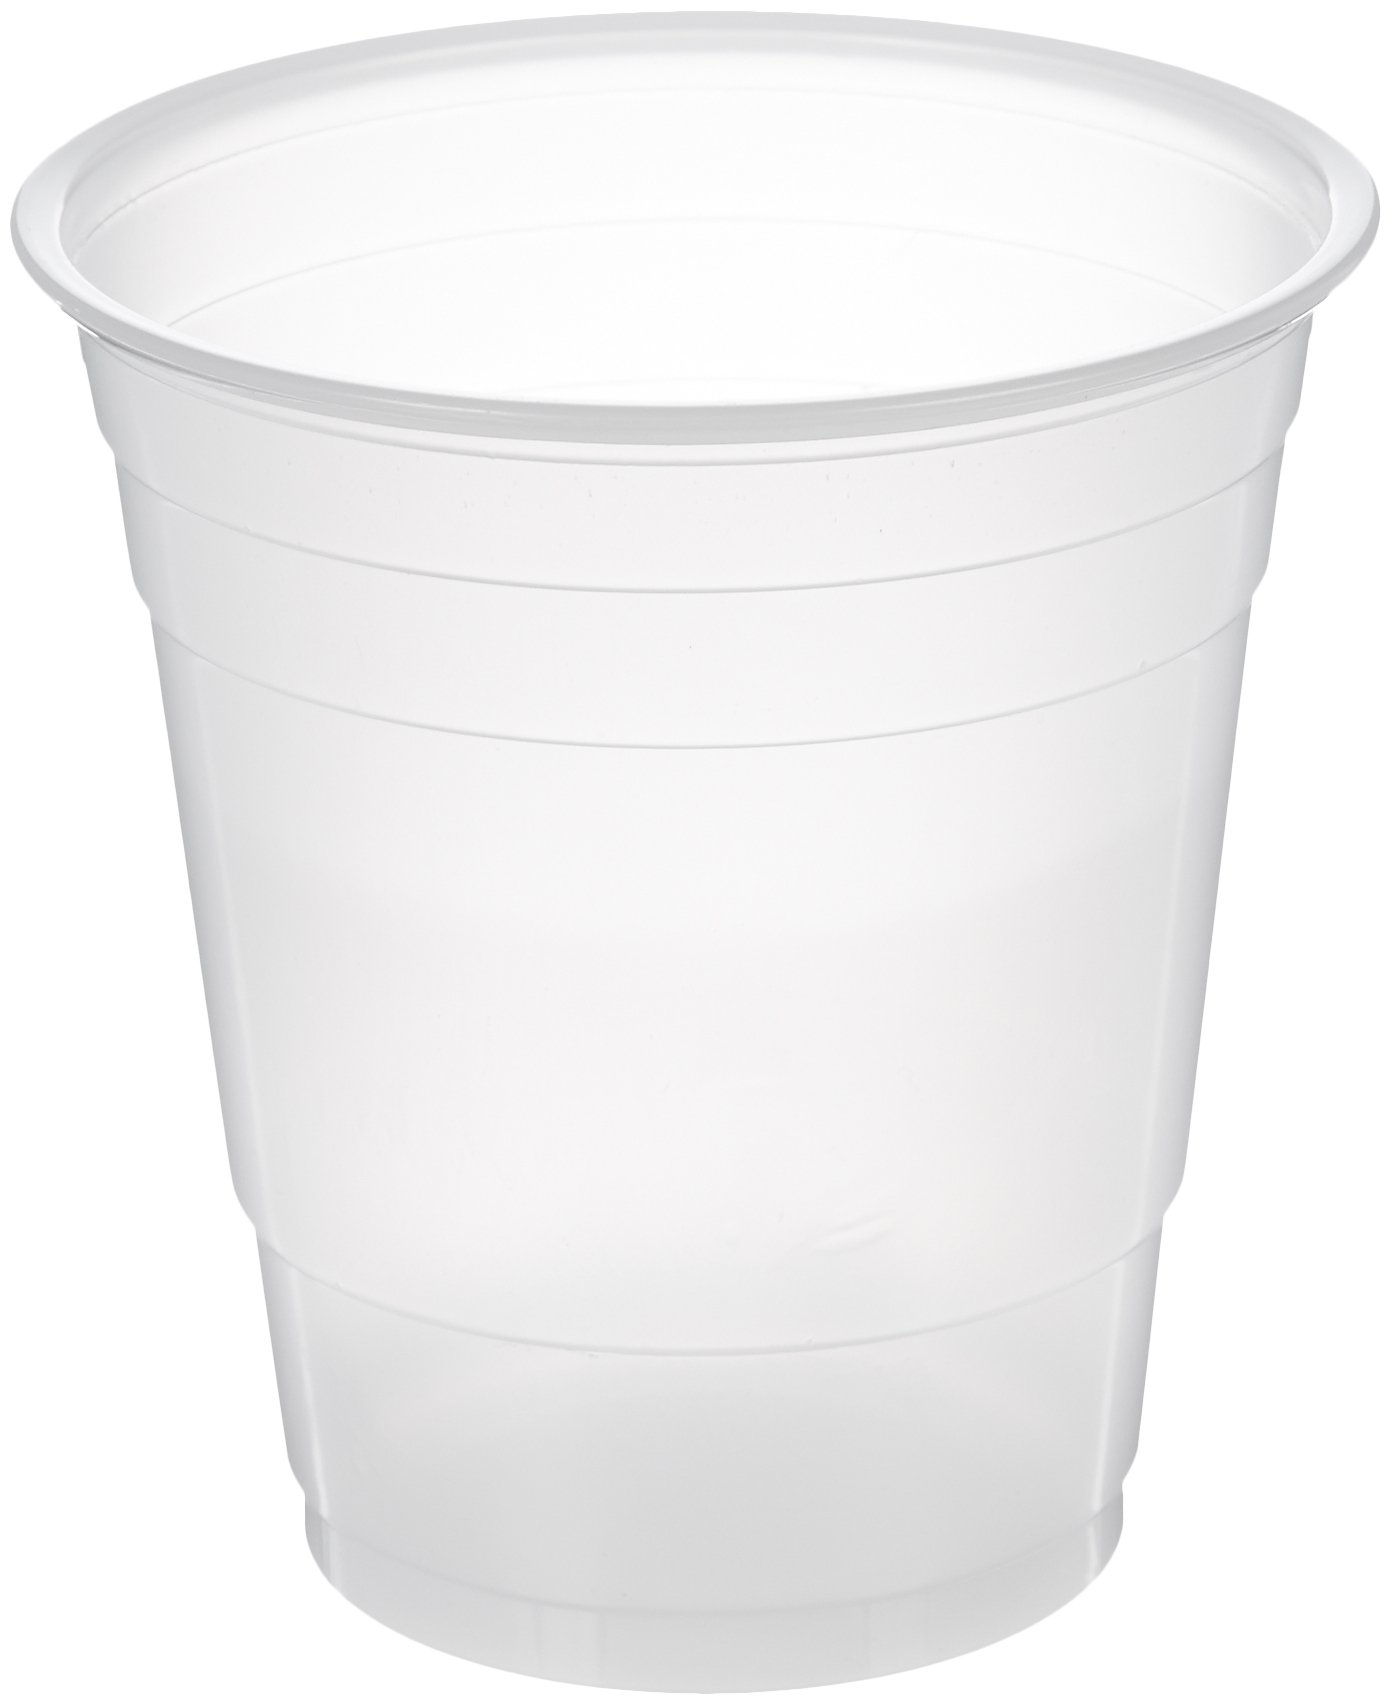 AmazonBasics Plastic Cups, Clear, 9 Ounce, Pack of 100